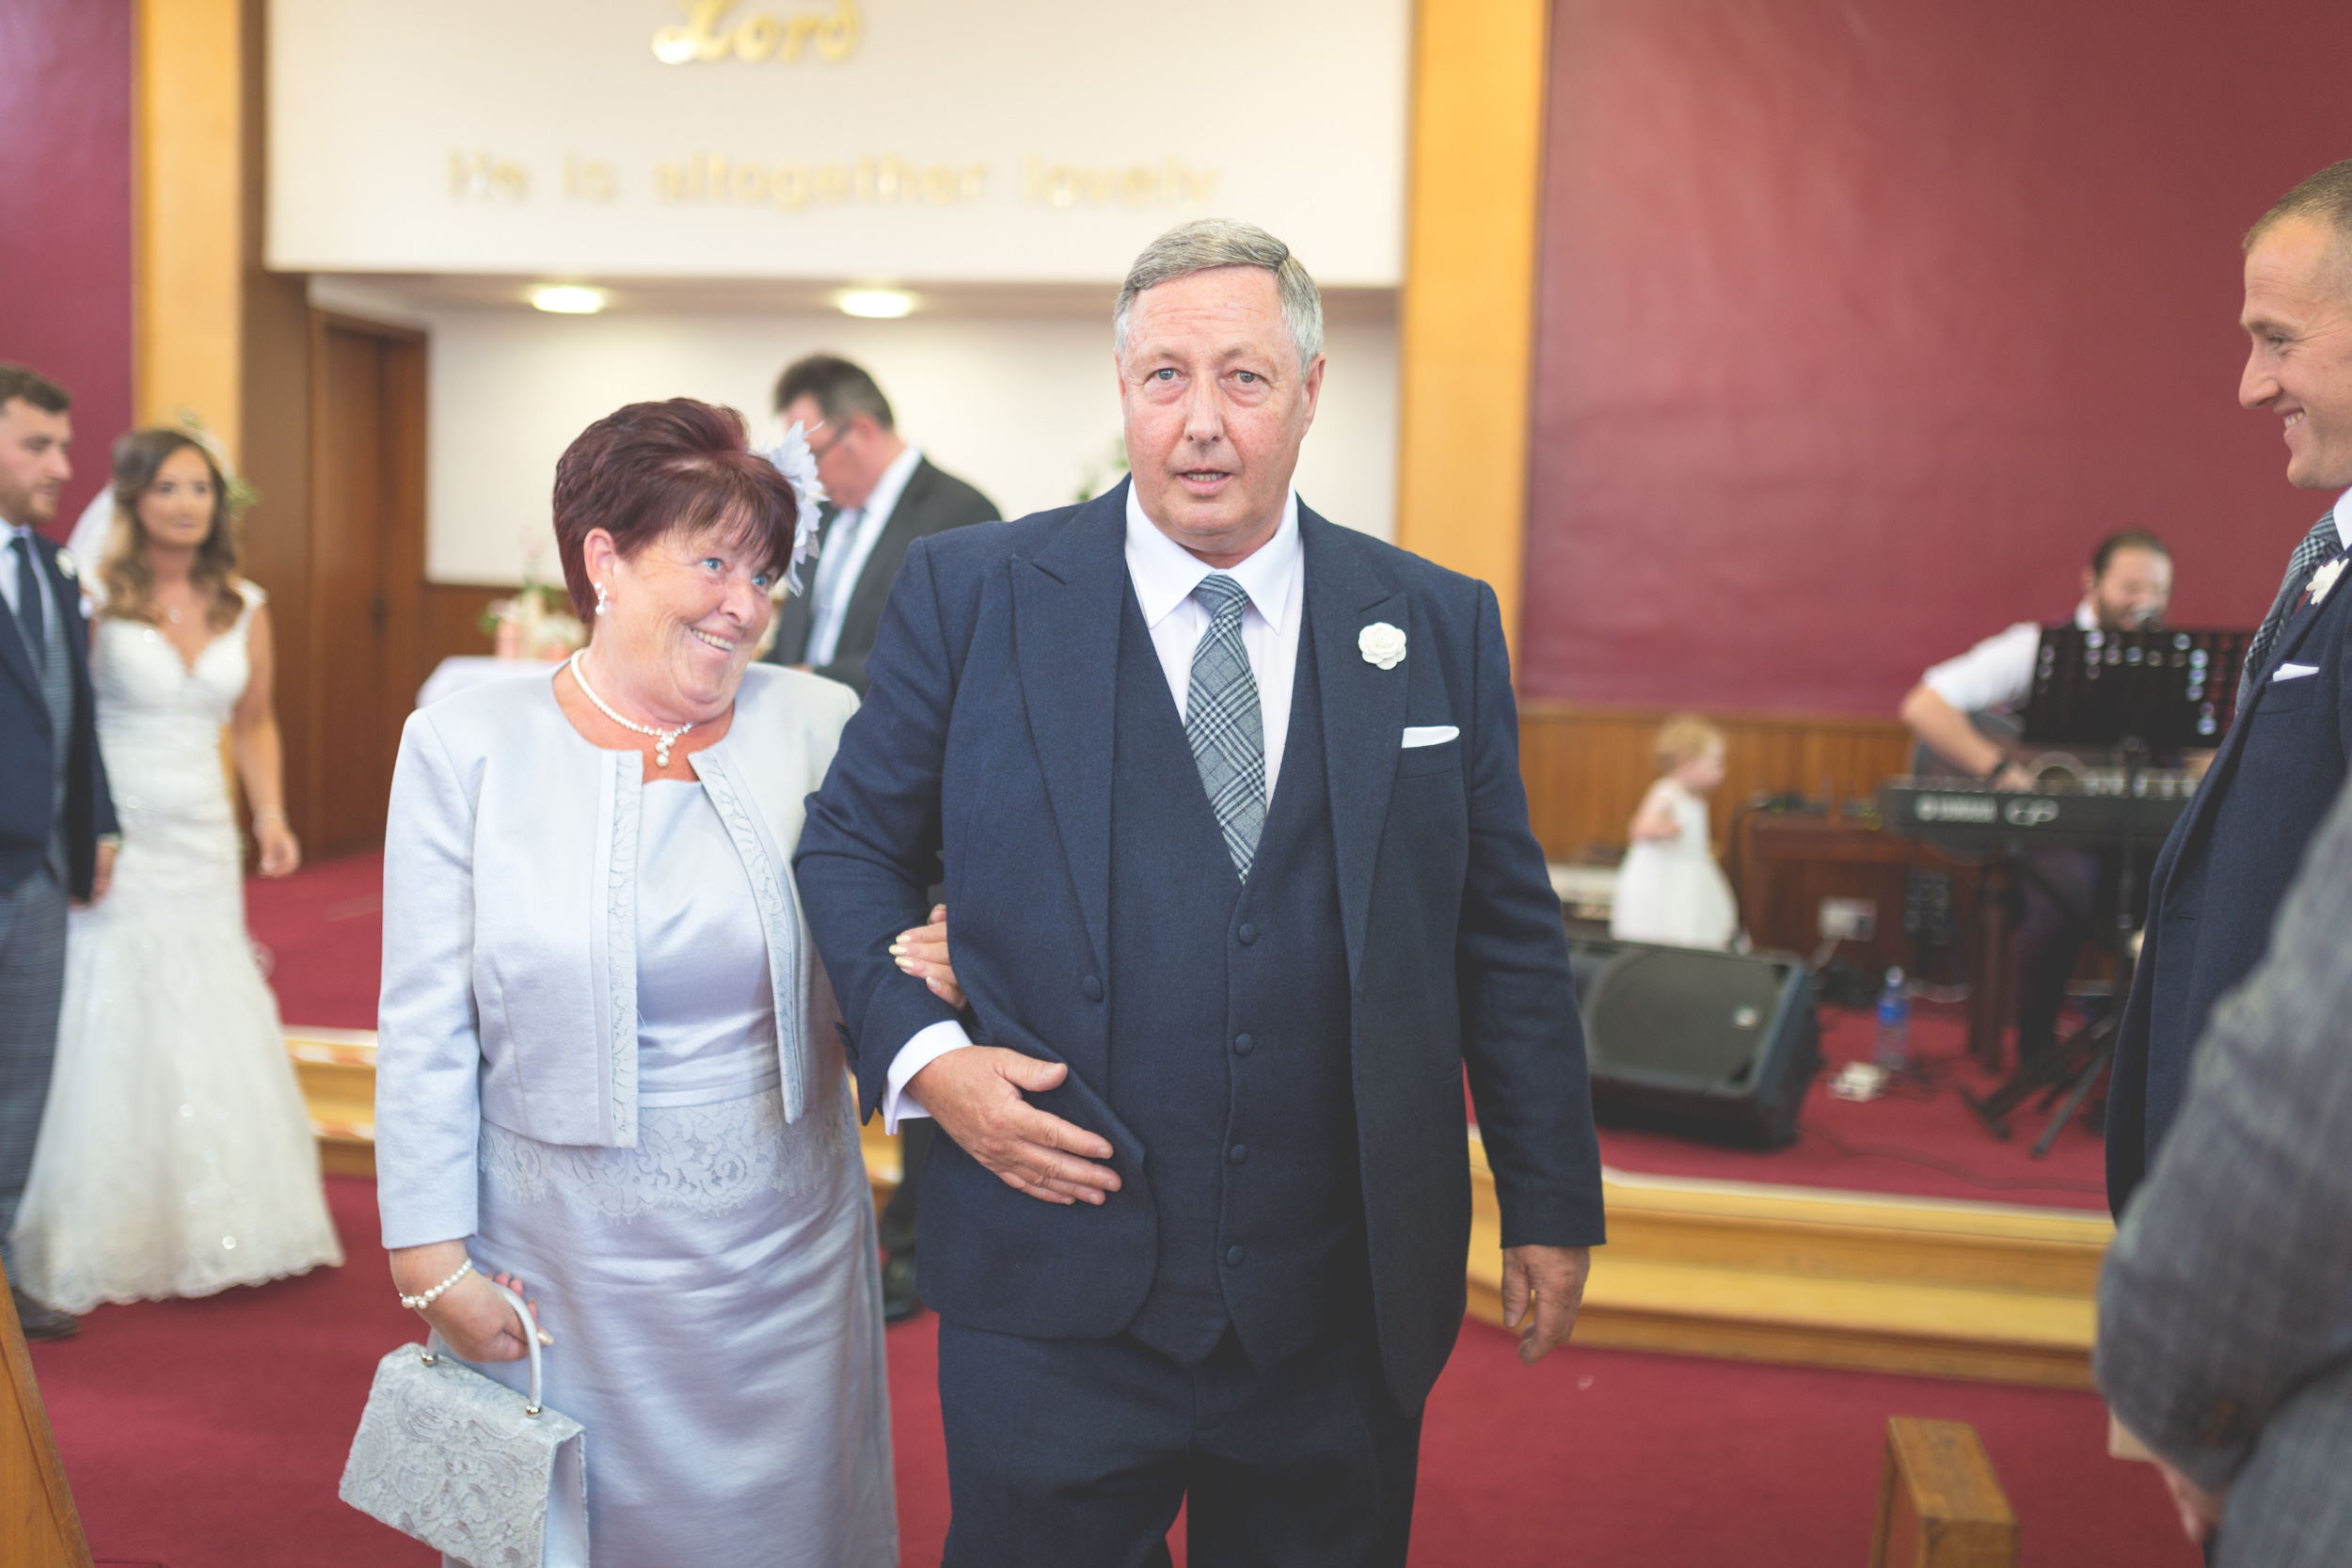 Brian McEwan | Northern Ireland Wedding Photographer | Rebecca & Michael | Ceremony-104.jpg